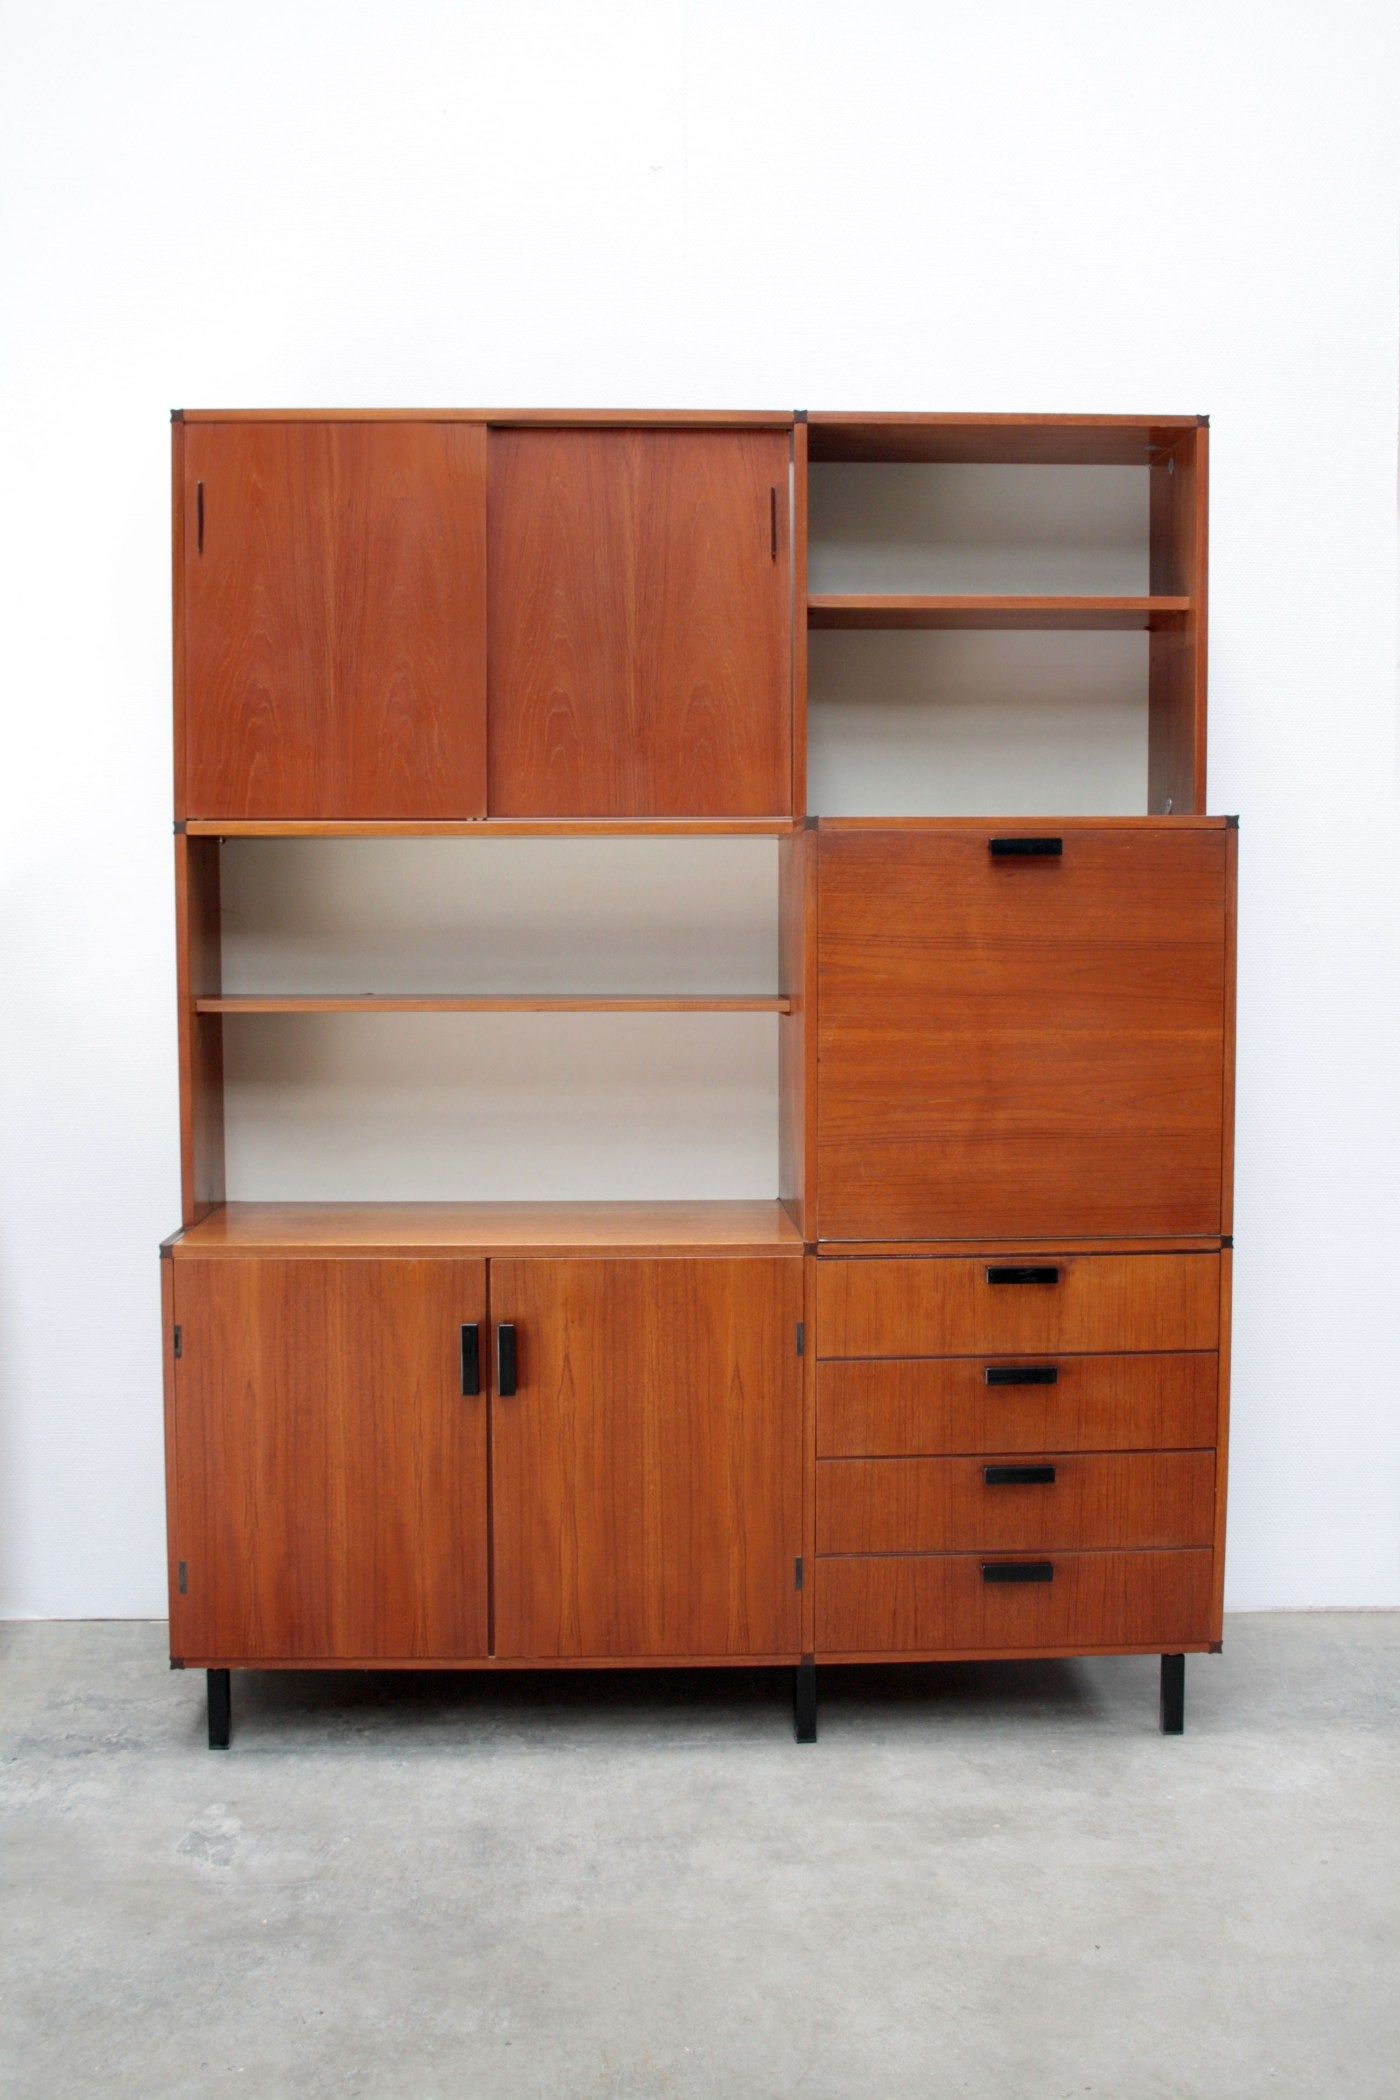 Pastoe Made to Measure kast van Cees Braakman   Vintage designs, Decorating and Storage